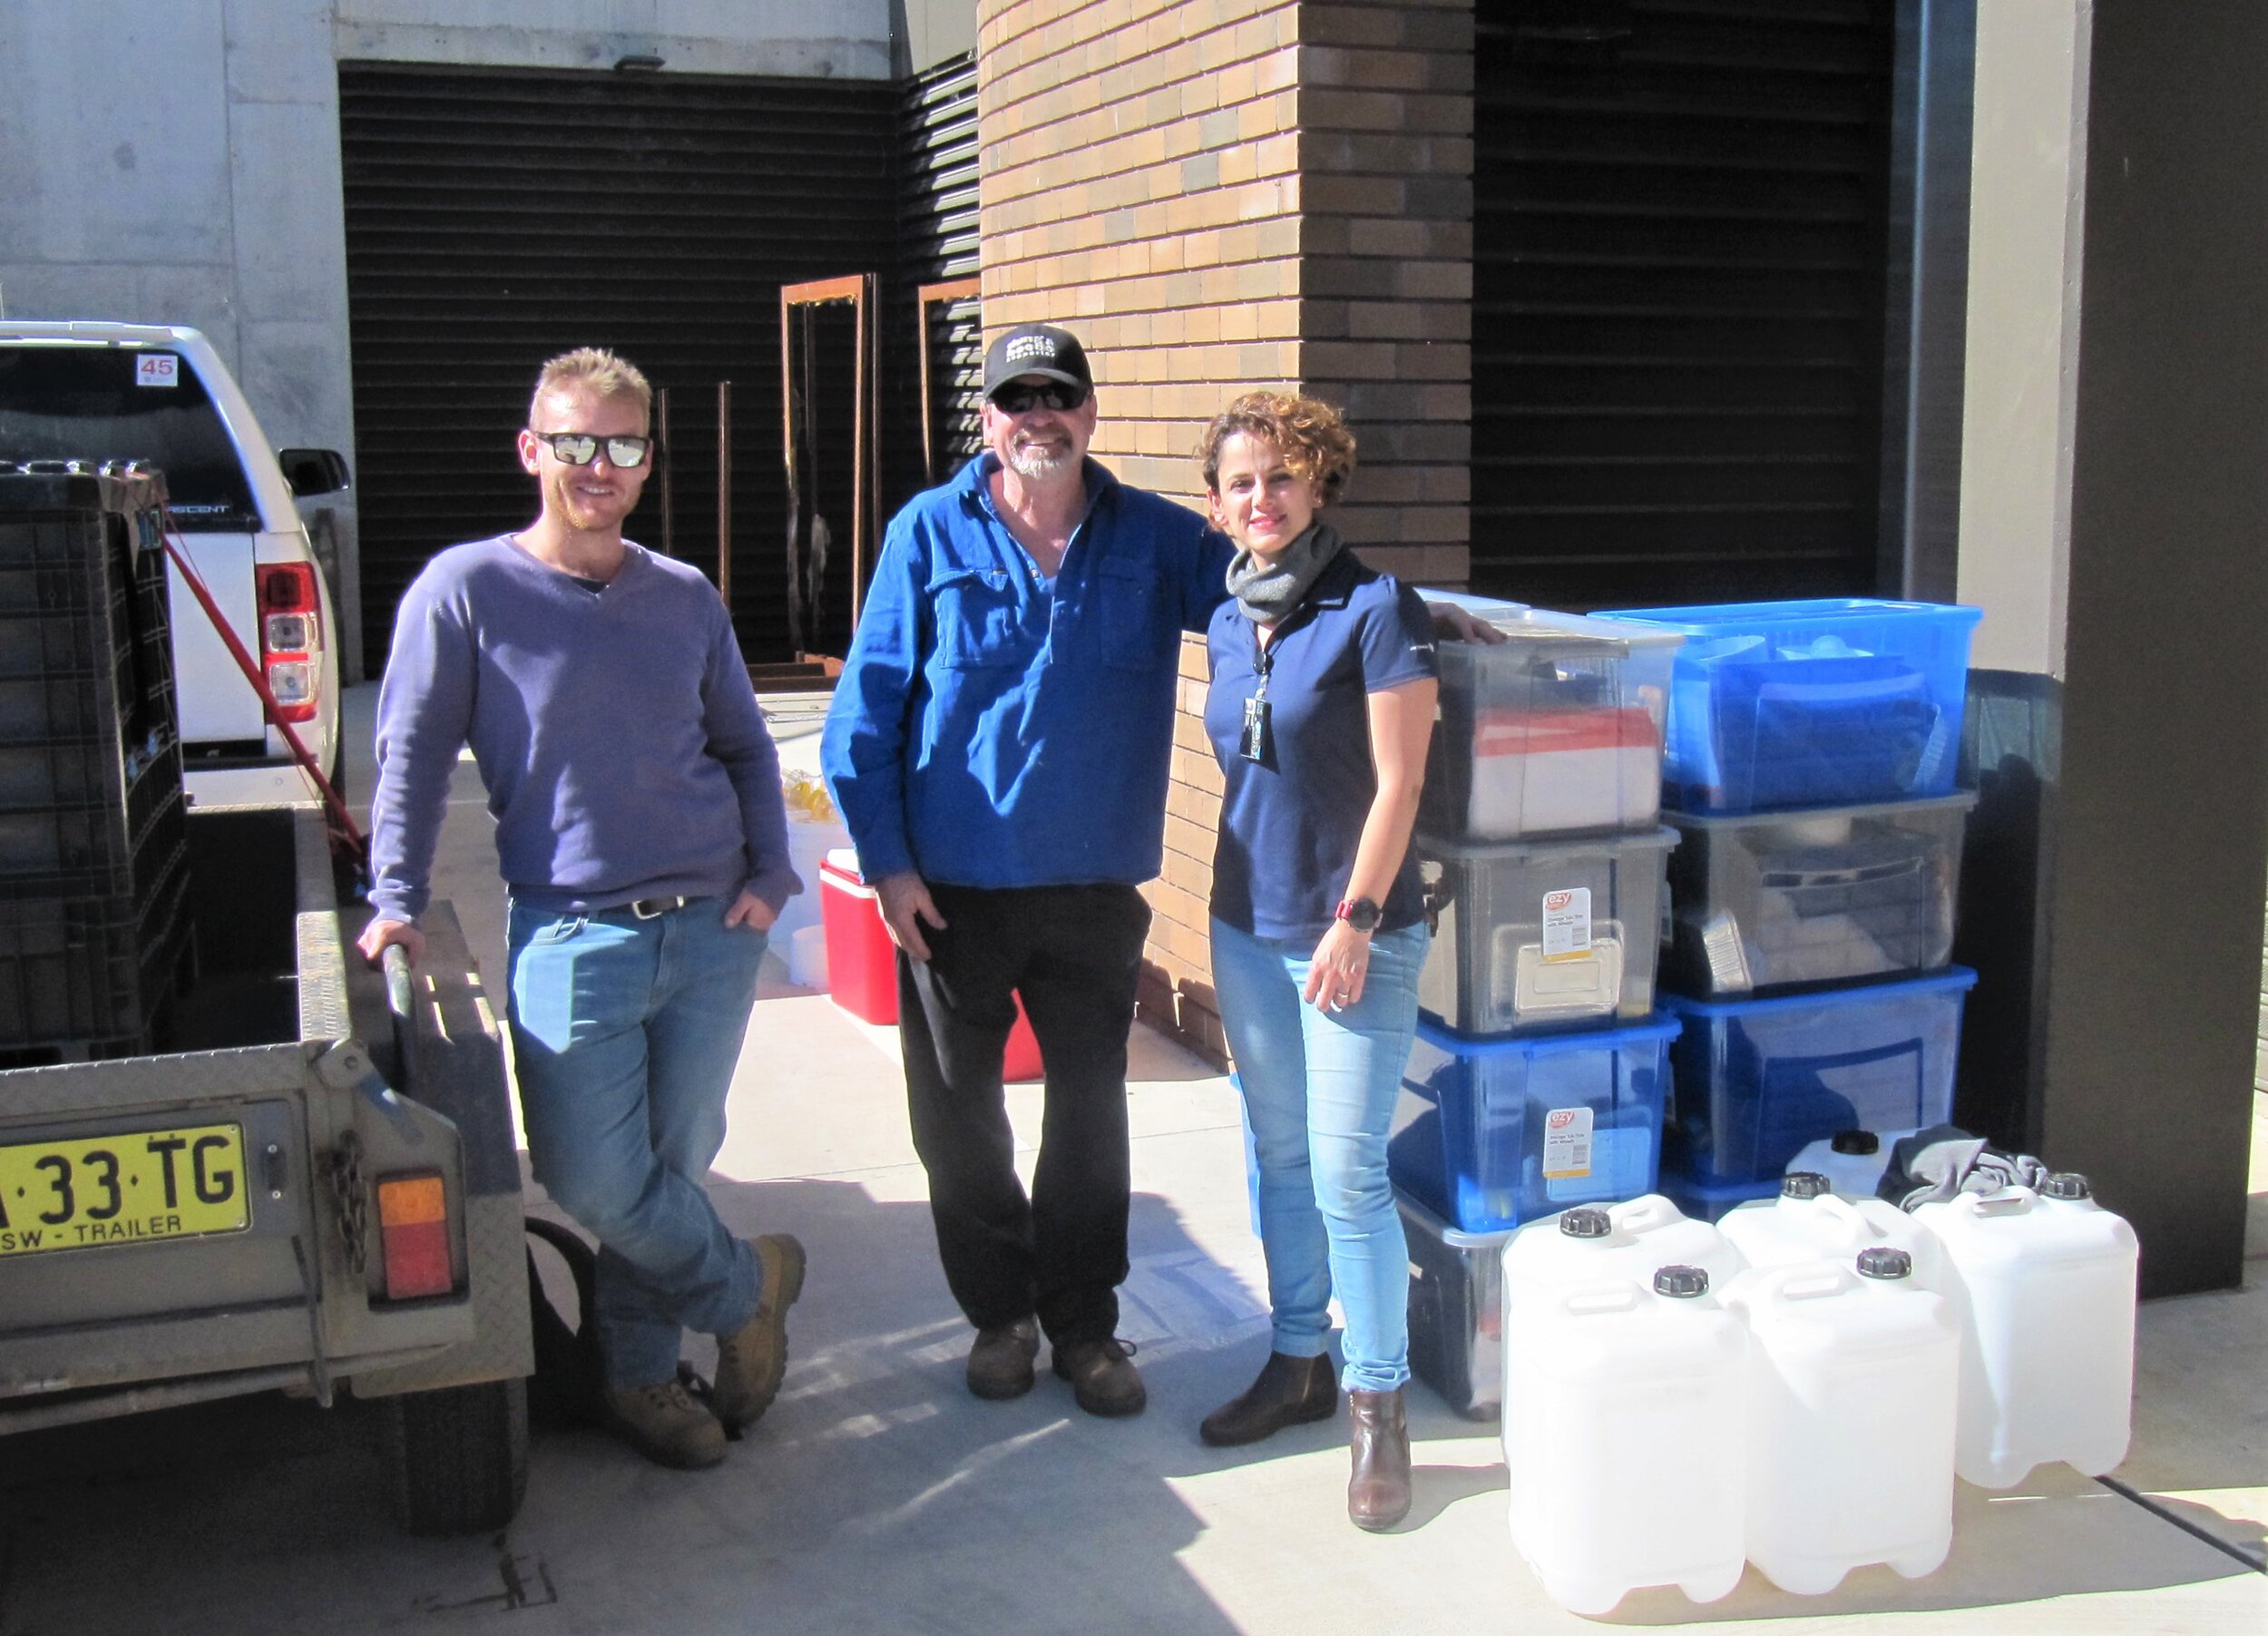 Zac Hemmings, Graeme Heath and Behnaz Ghaedi at UNE taking delivery of the dung beetle field monitoring kits